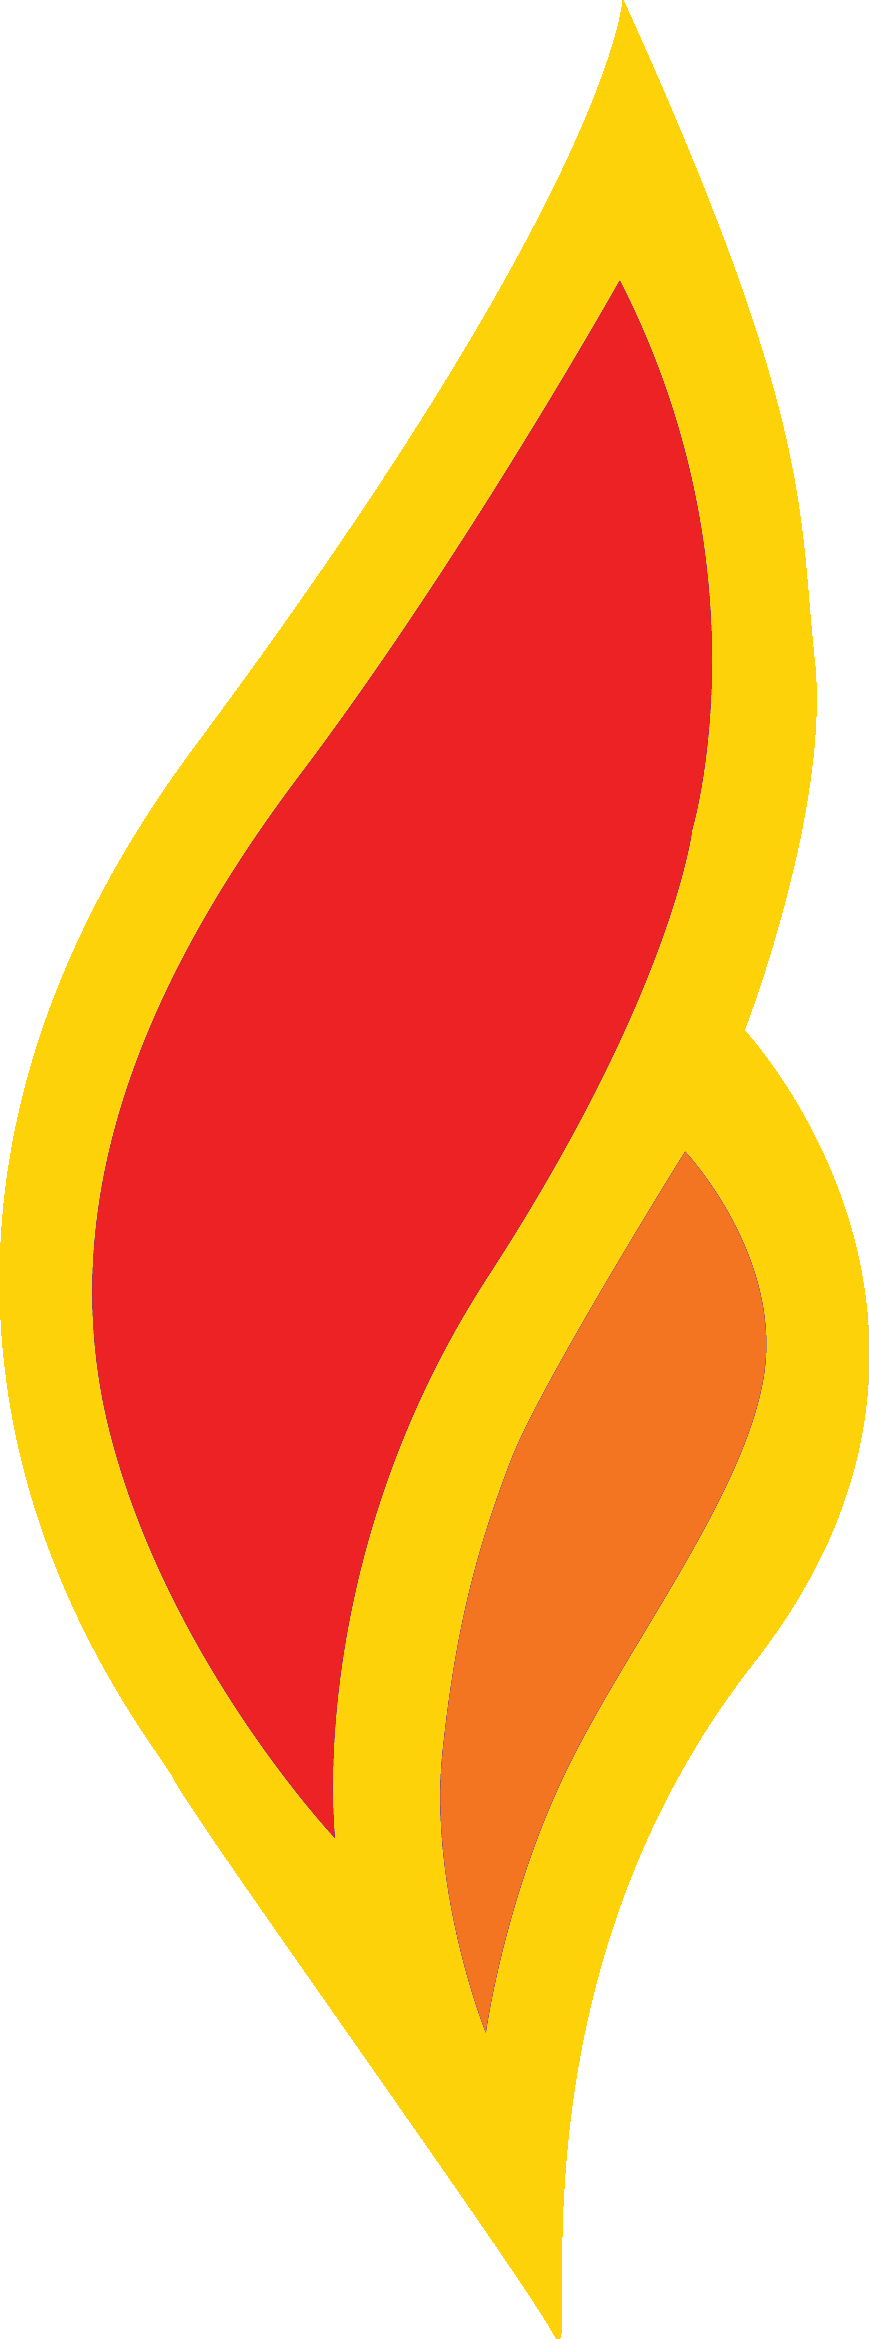 Flame art png. Transparent pictures free icons